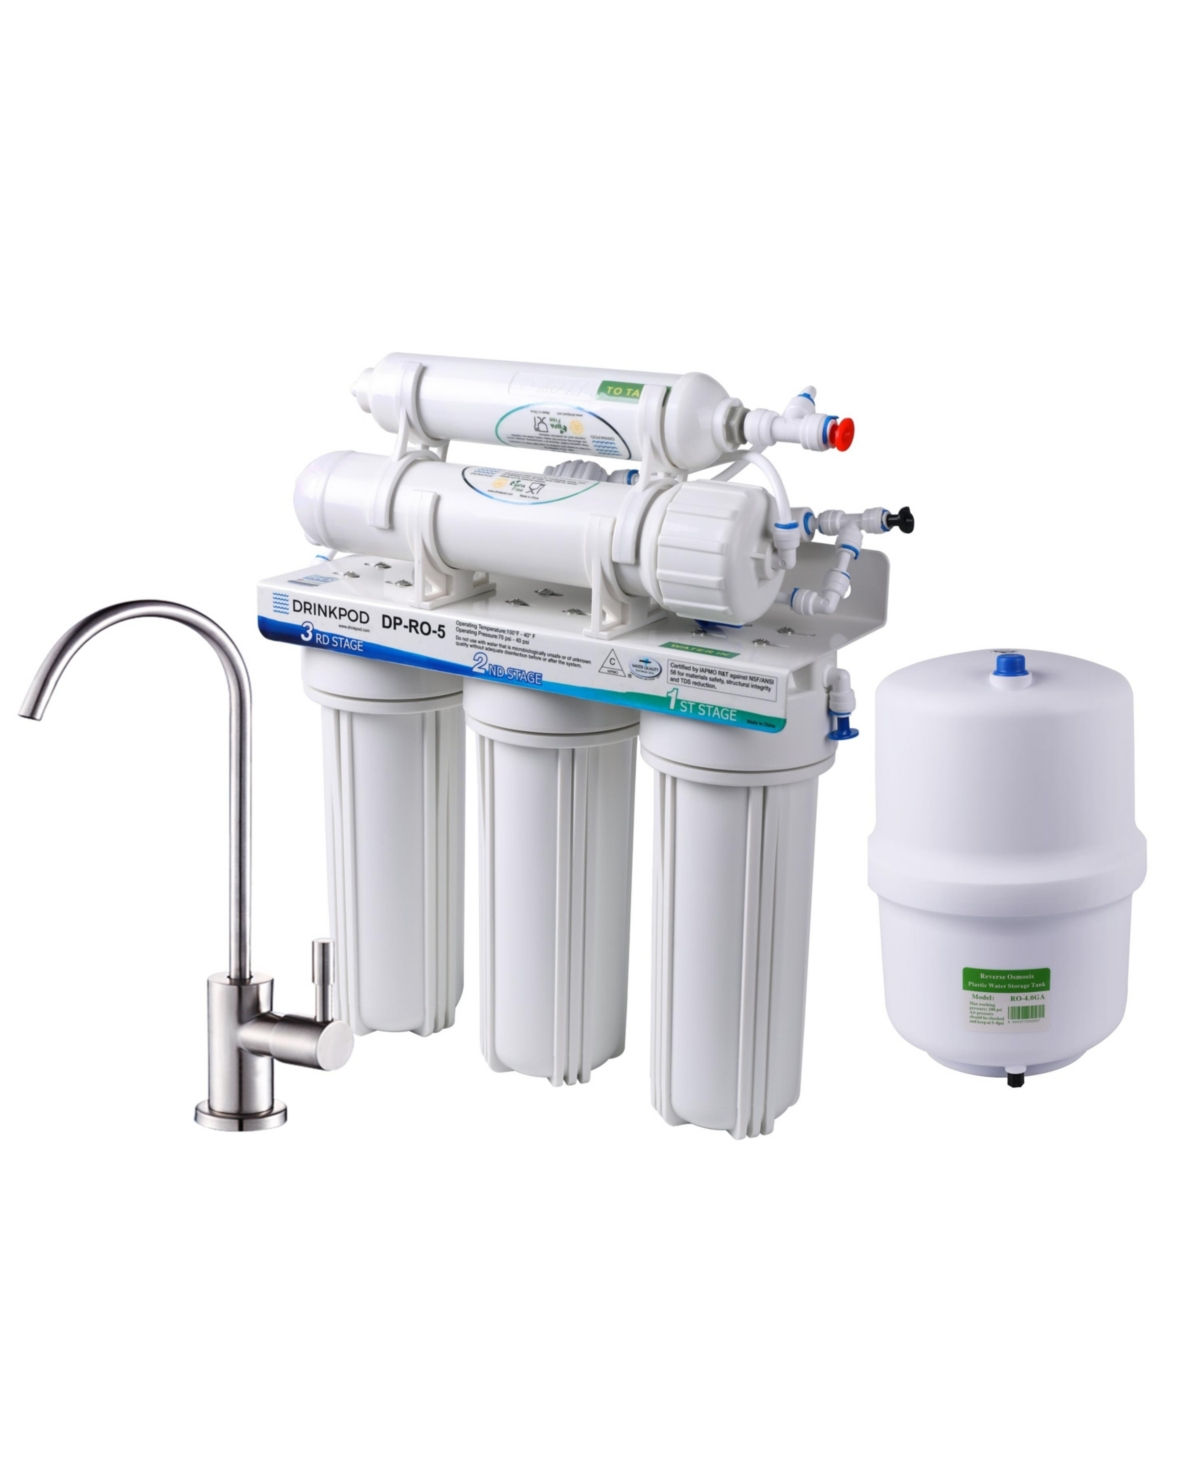 Drinkpod 5 Stage Under Sink Reverse Osmosis System with Brushed Nickel Kitchen Sink Faucet